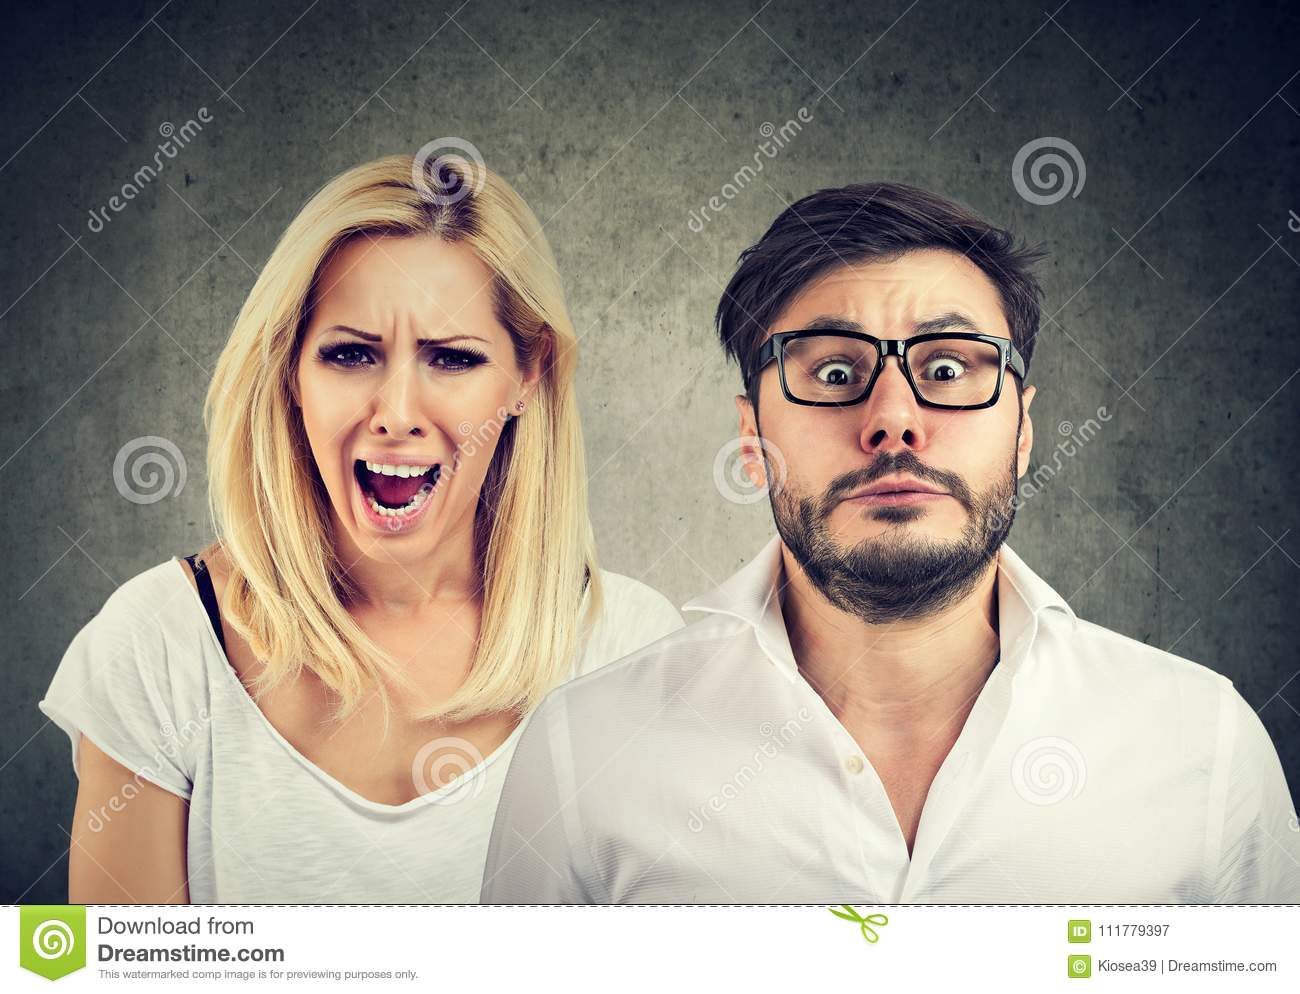 Angry mad woman screaming and fearful man